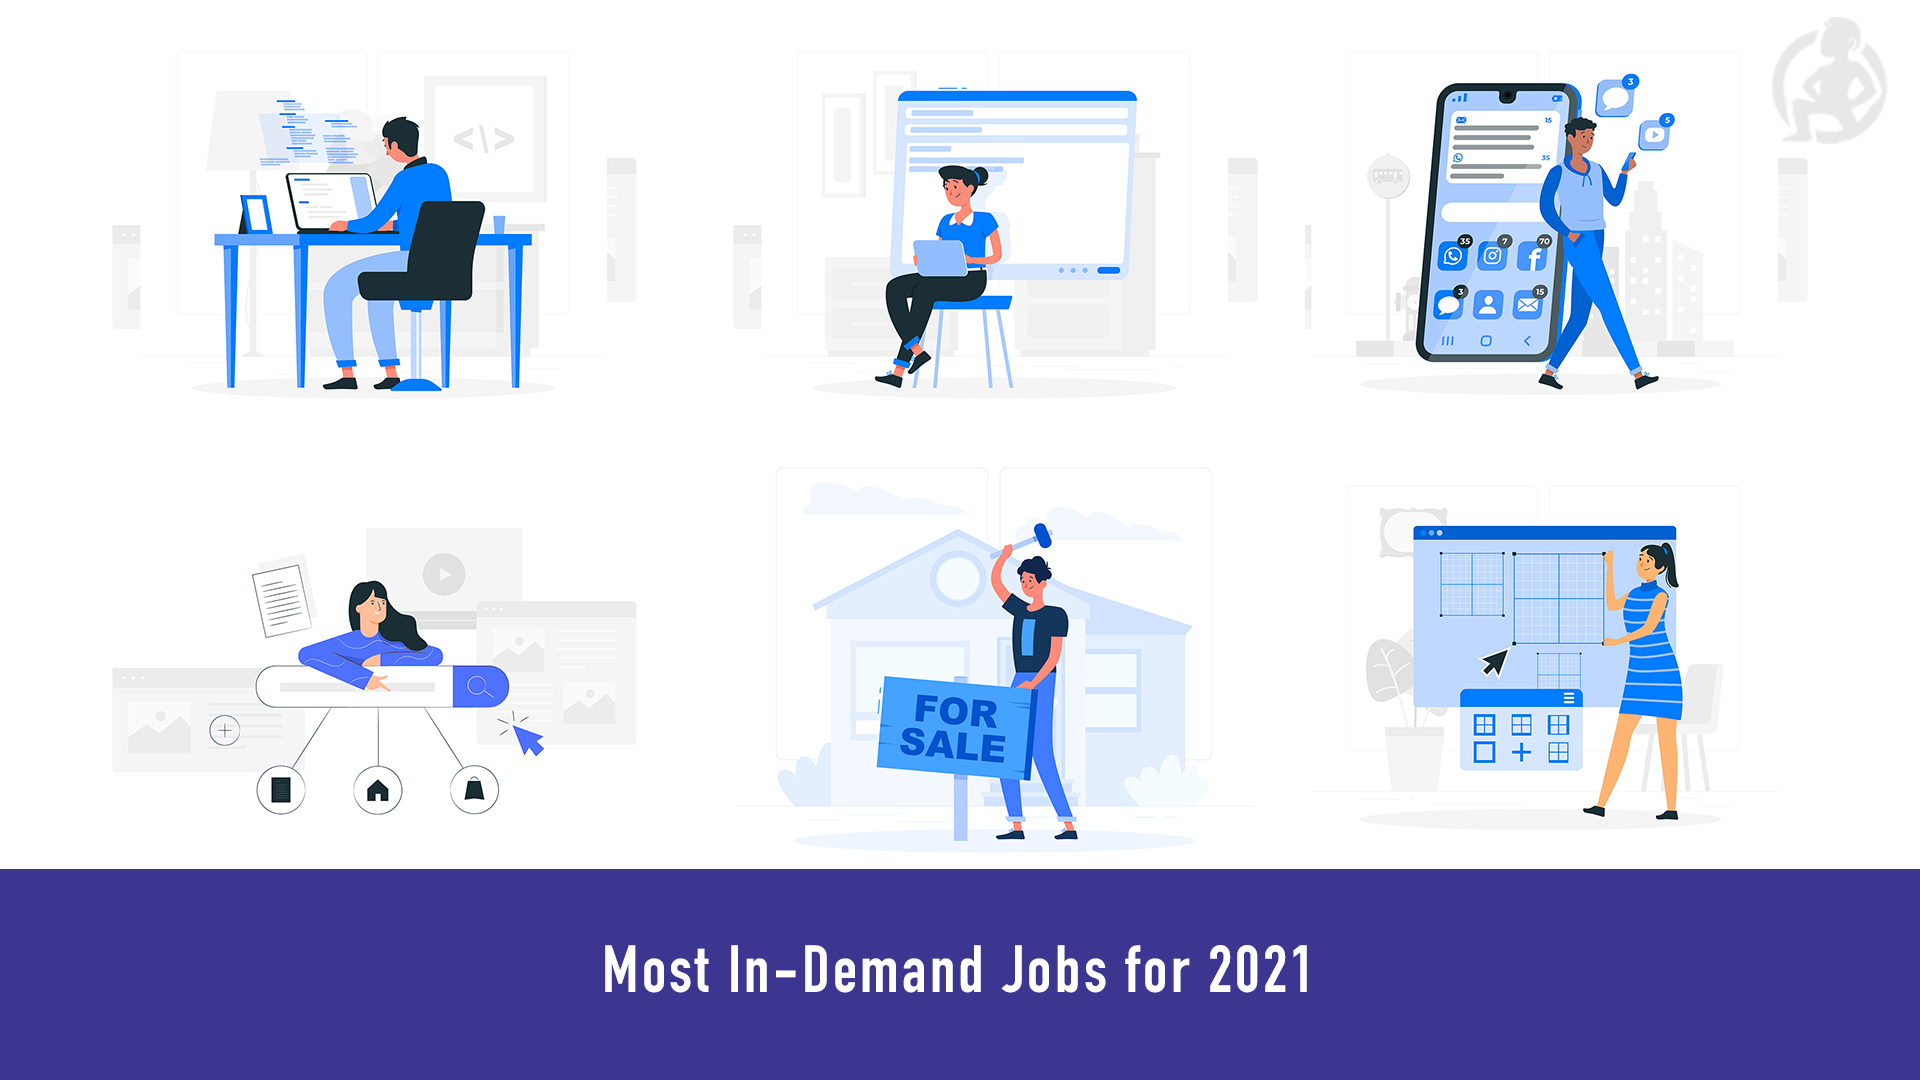 Most In-Demand Jobs for 2021